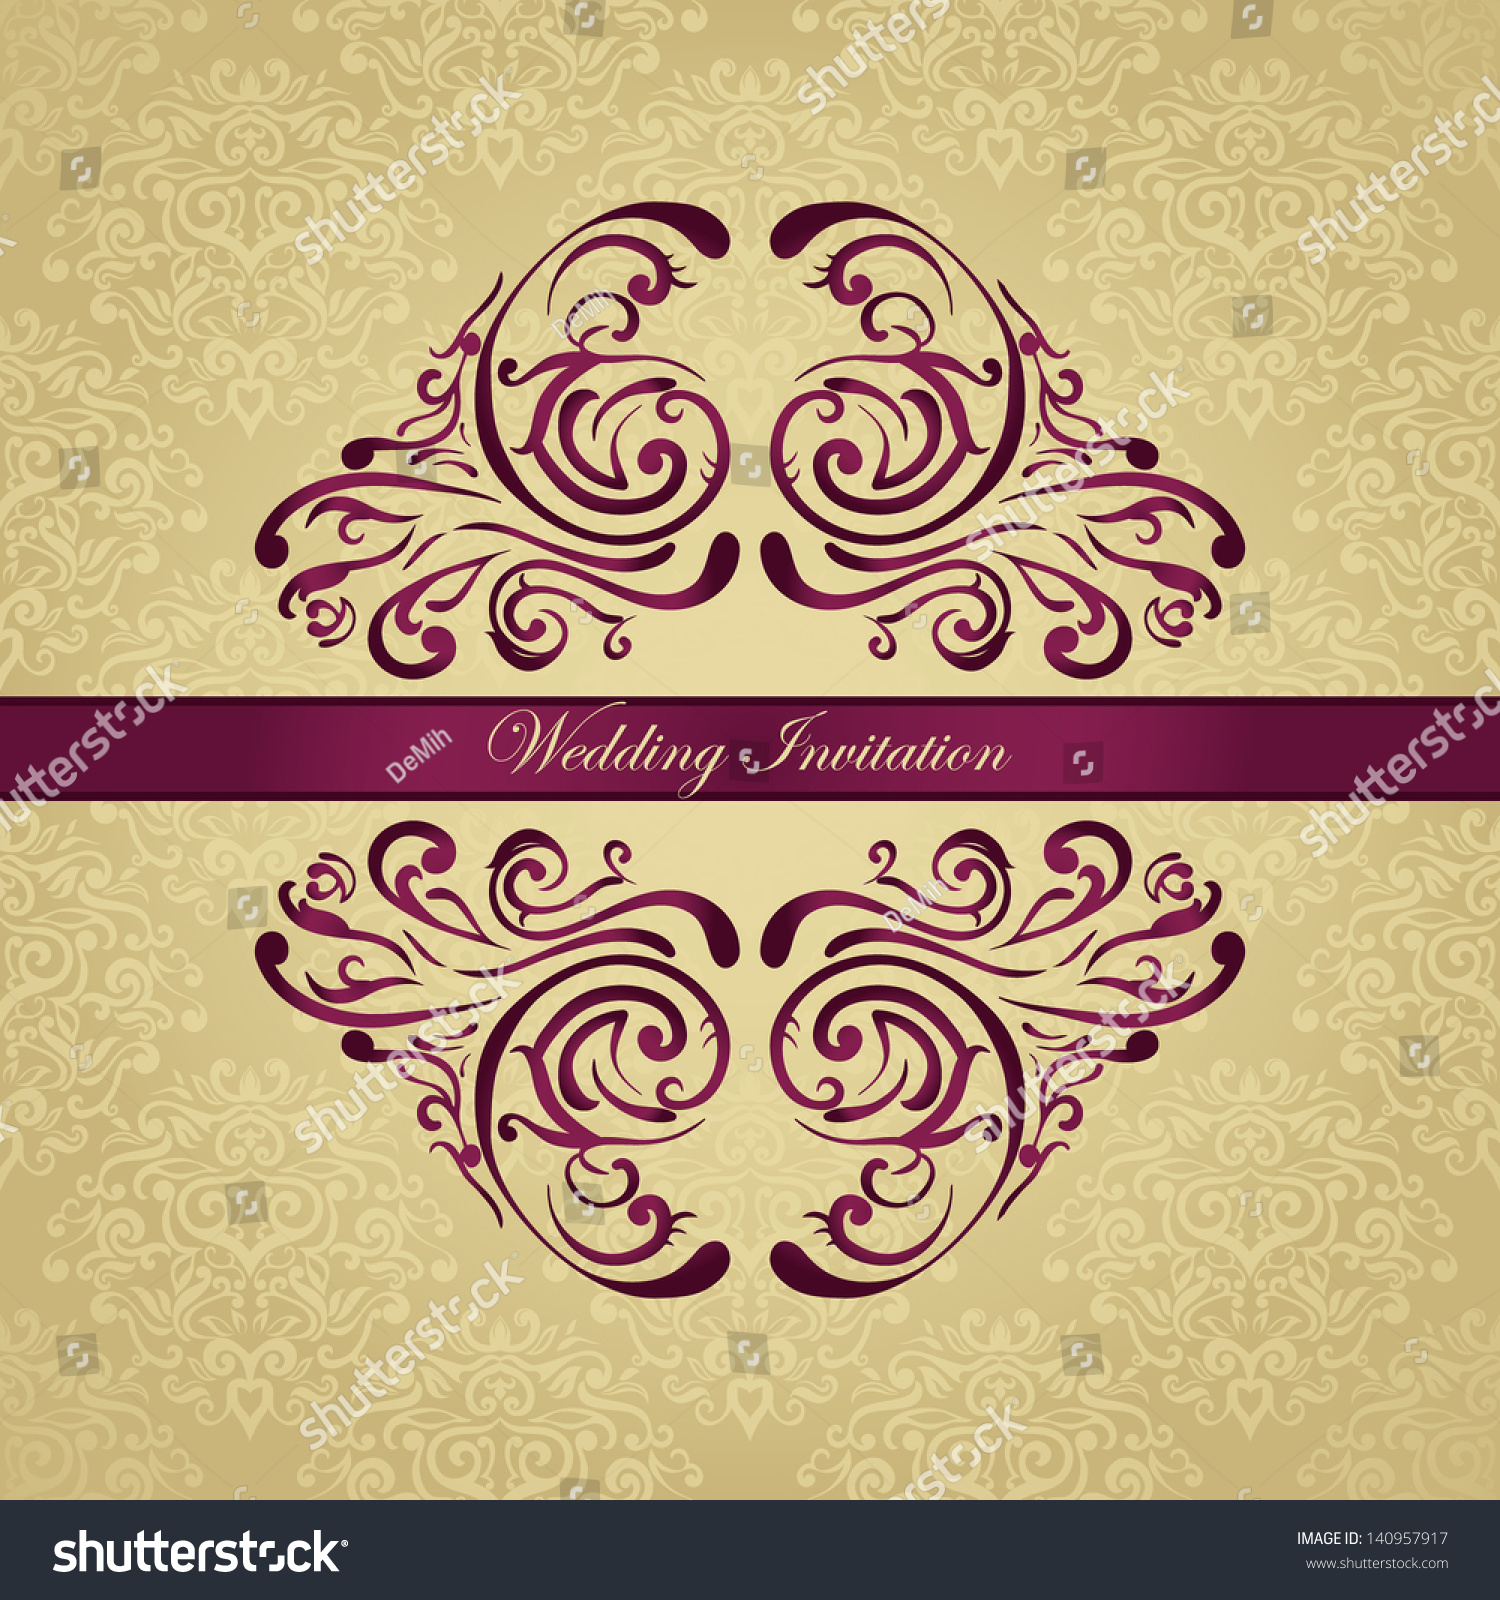 Royal wedding invitation on golden background stock vector 140957917 royal wedding invitation on golden background stopboris Image collections